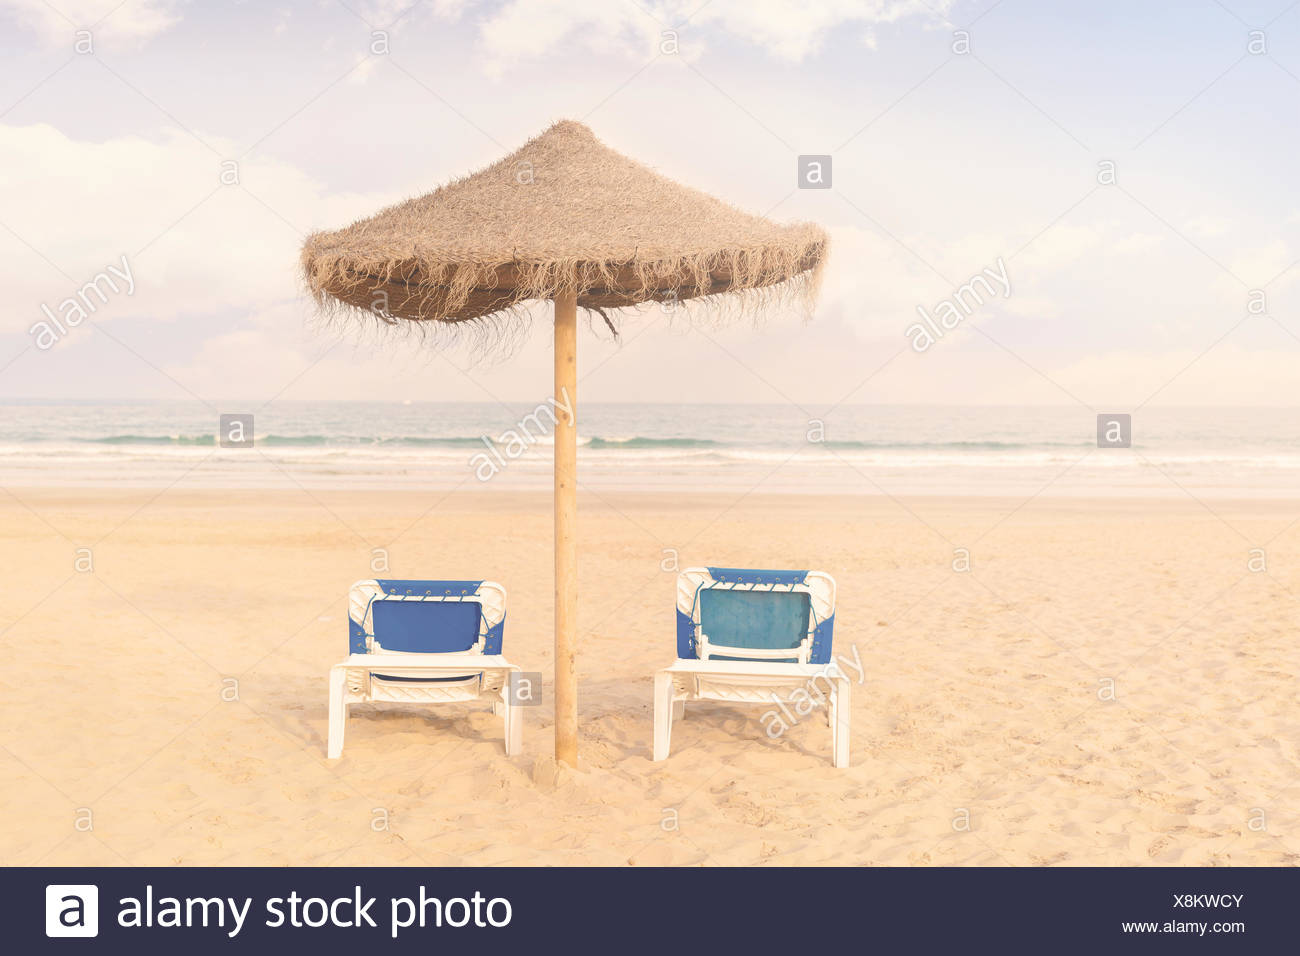 Two sun loungers and a parasol on beach - Stock Image